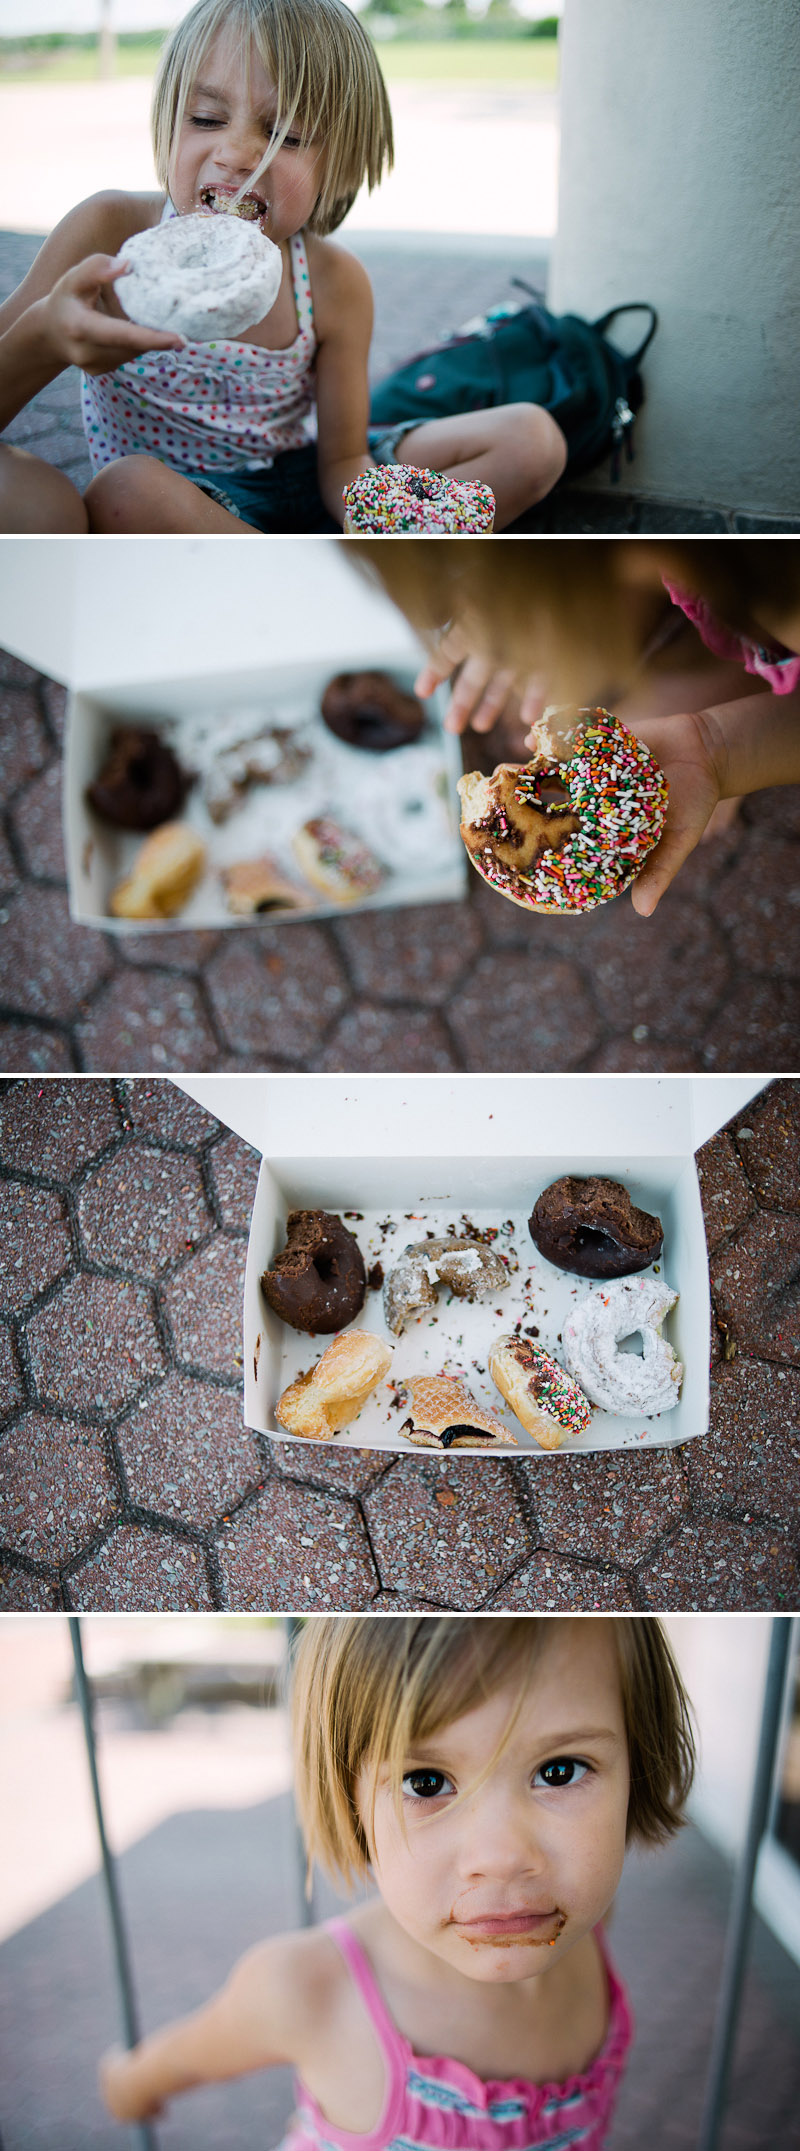 Donuts from the Donut Hole in Destin, Florida.